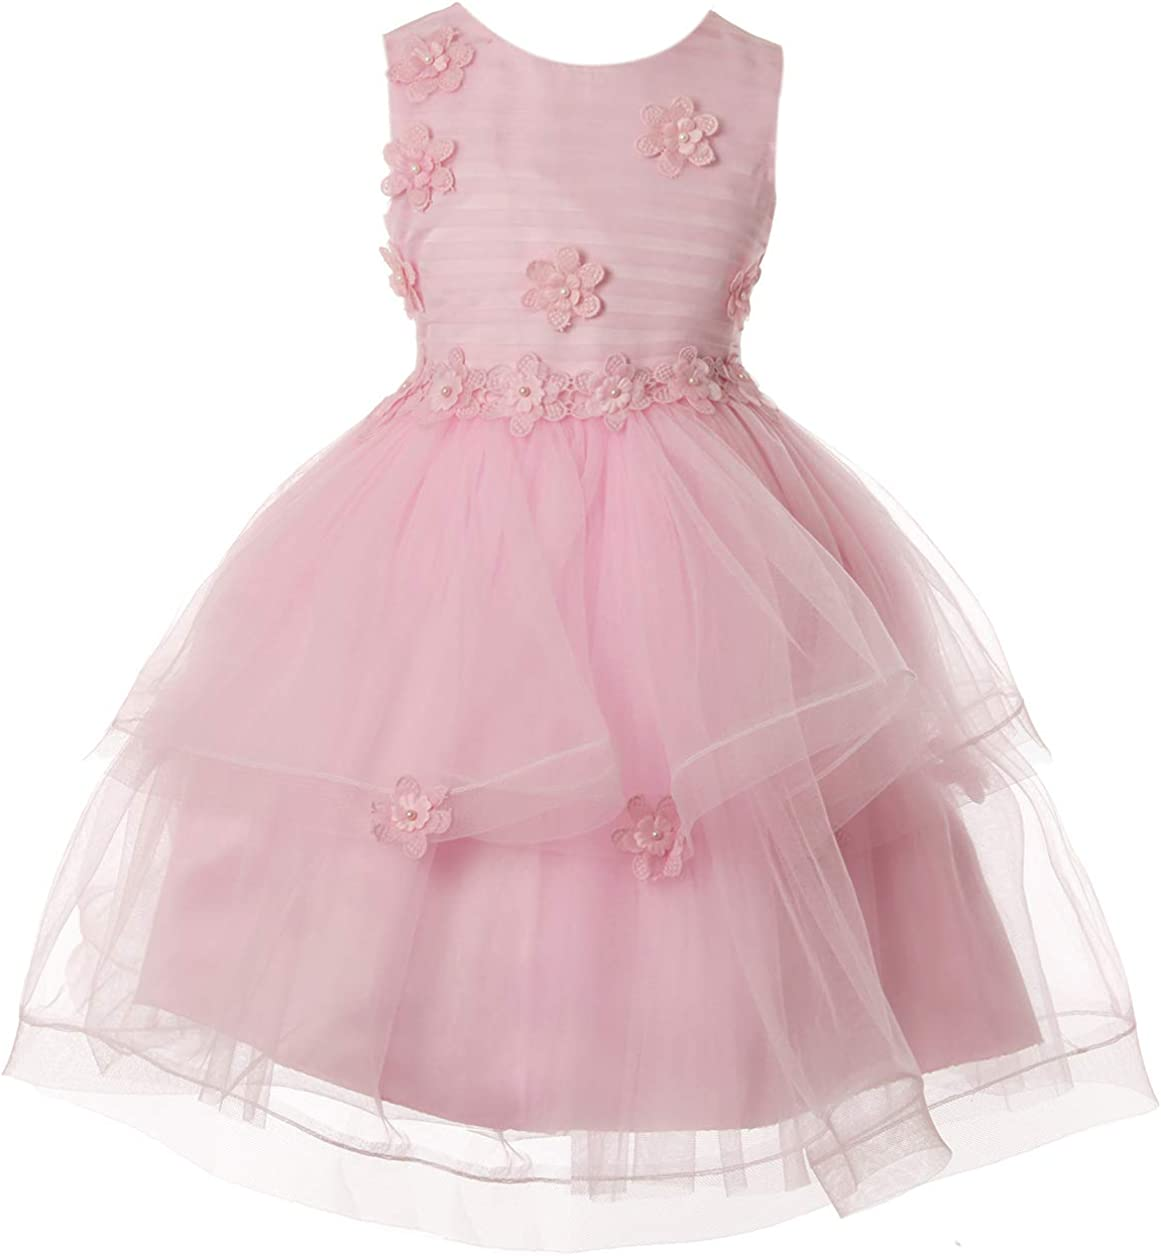 Girl Special Occasion Dress with Flower on Waist Line Bodice and Skirt